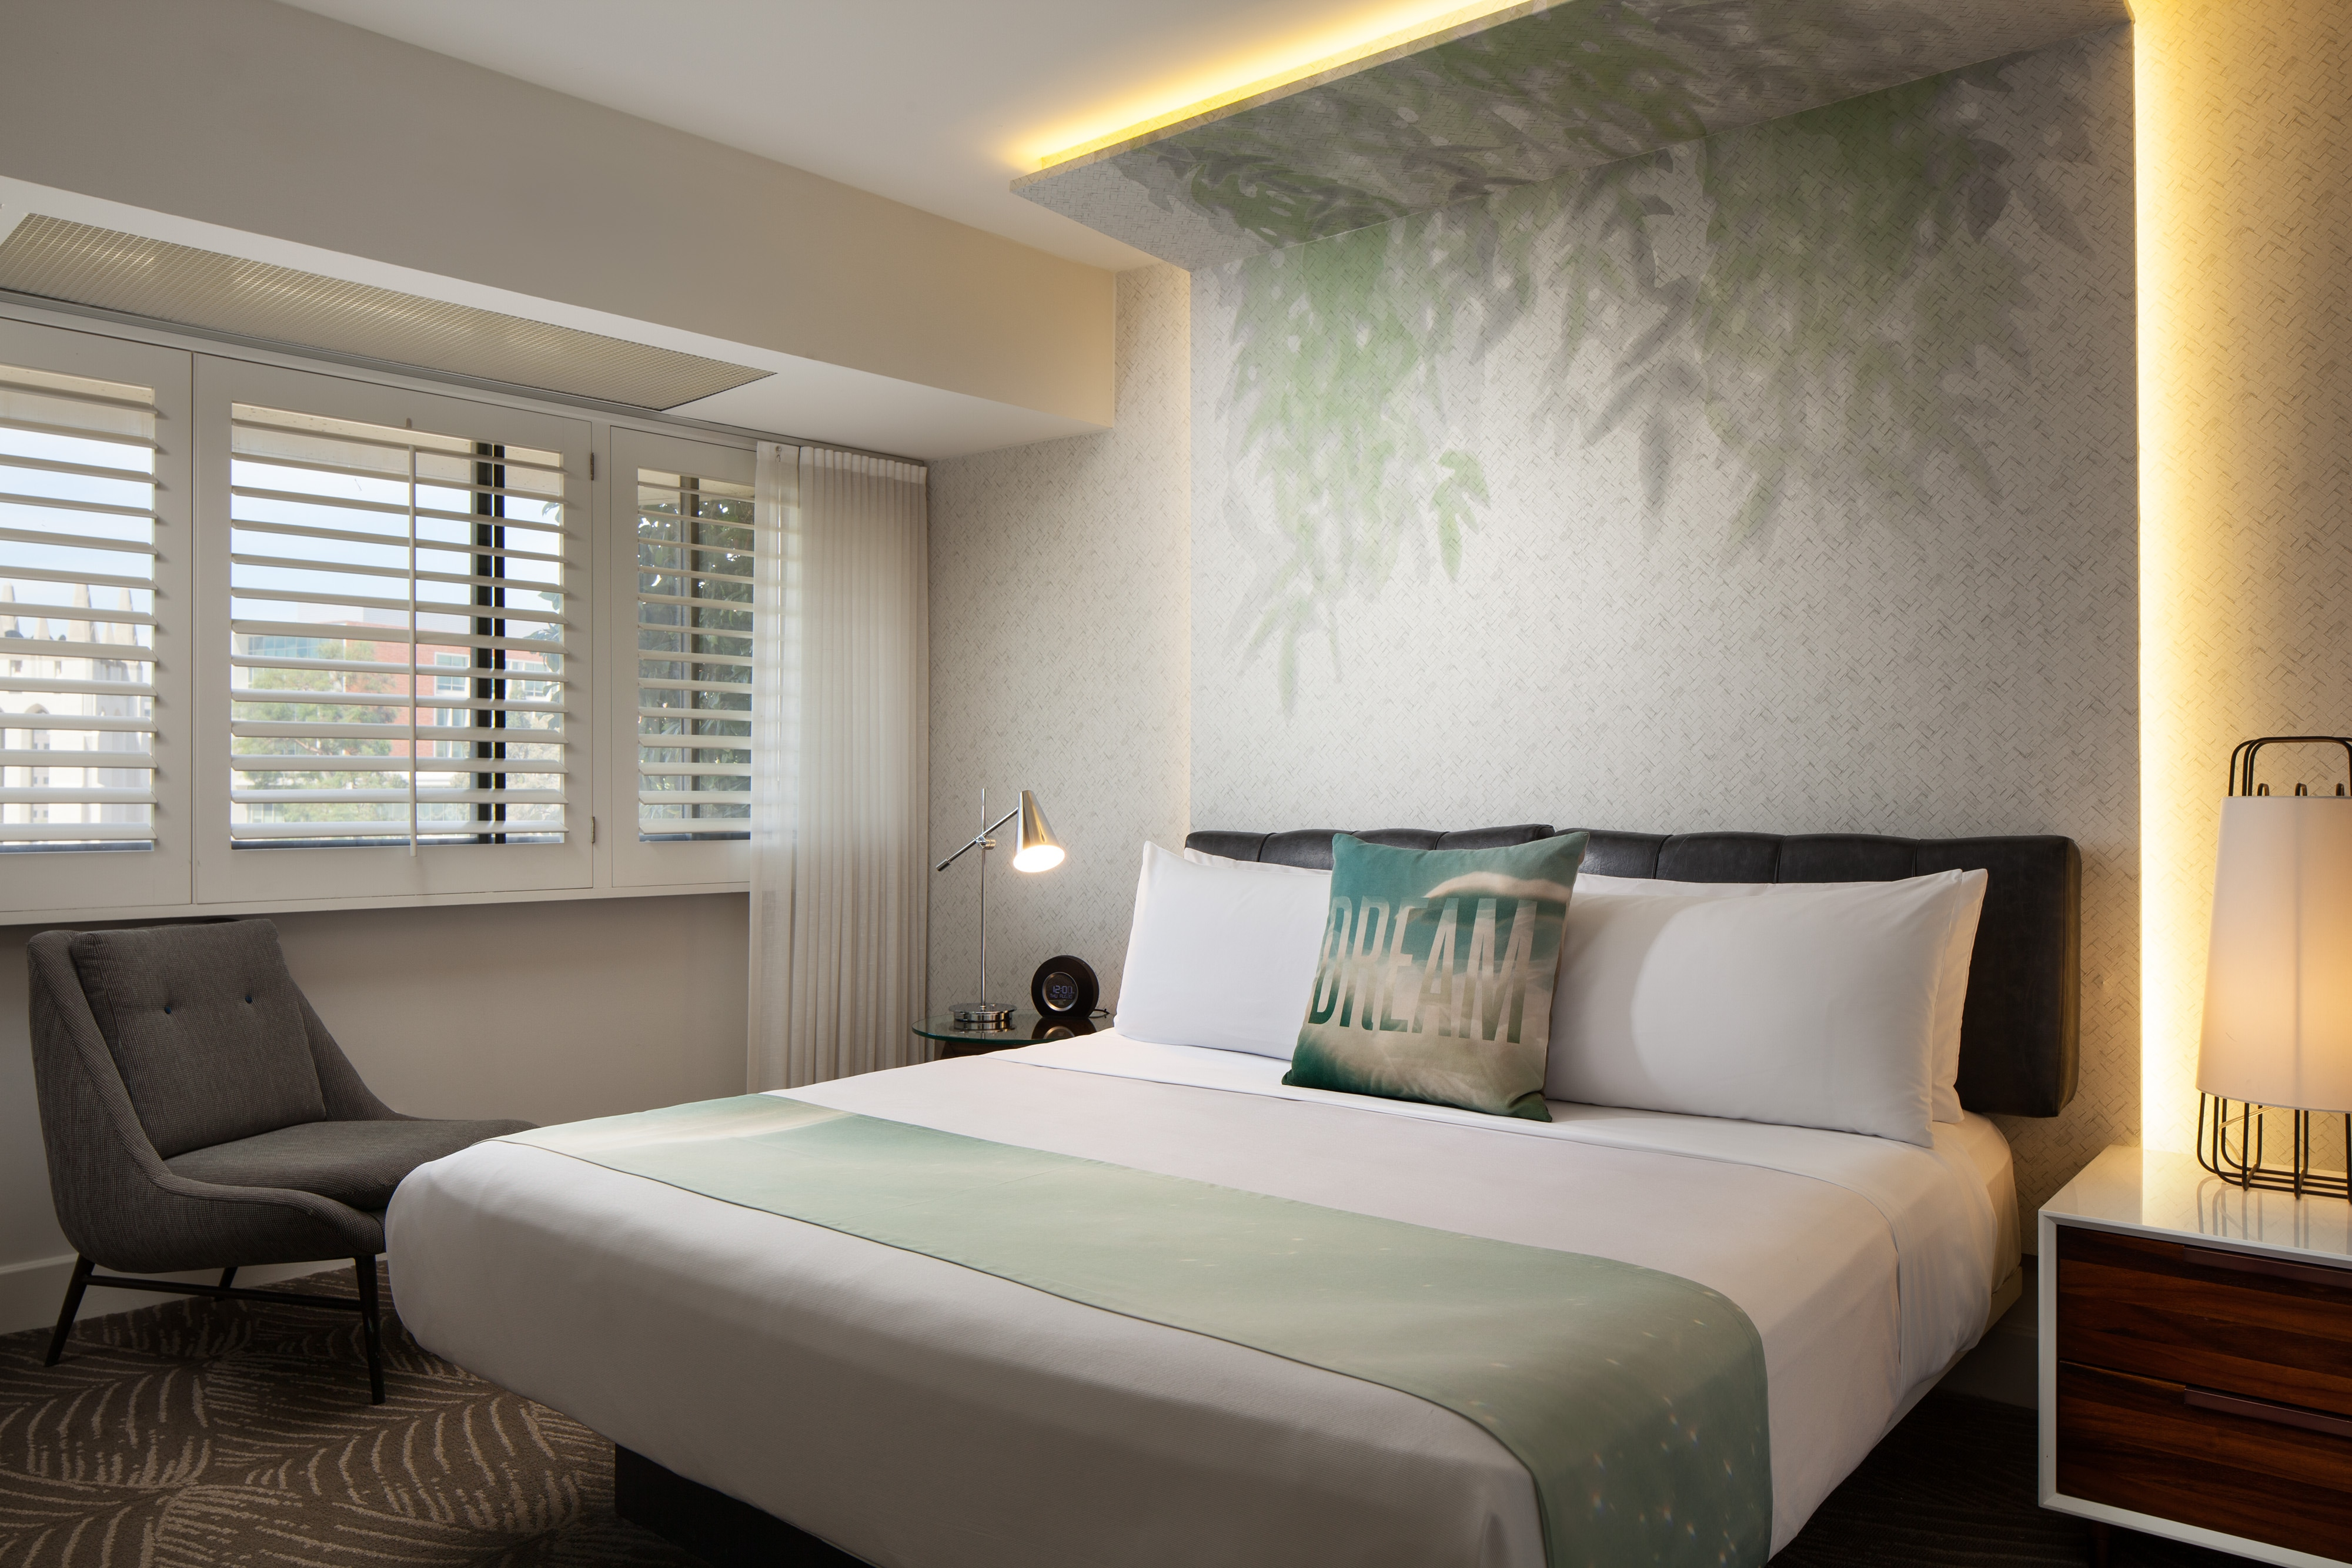 hotel rooms  amenities  w los angeles  west beverly hills